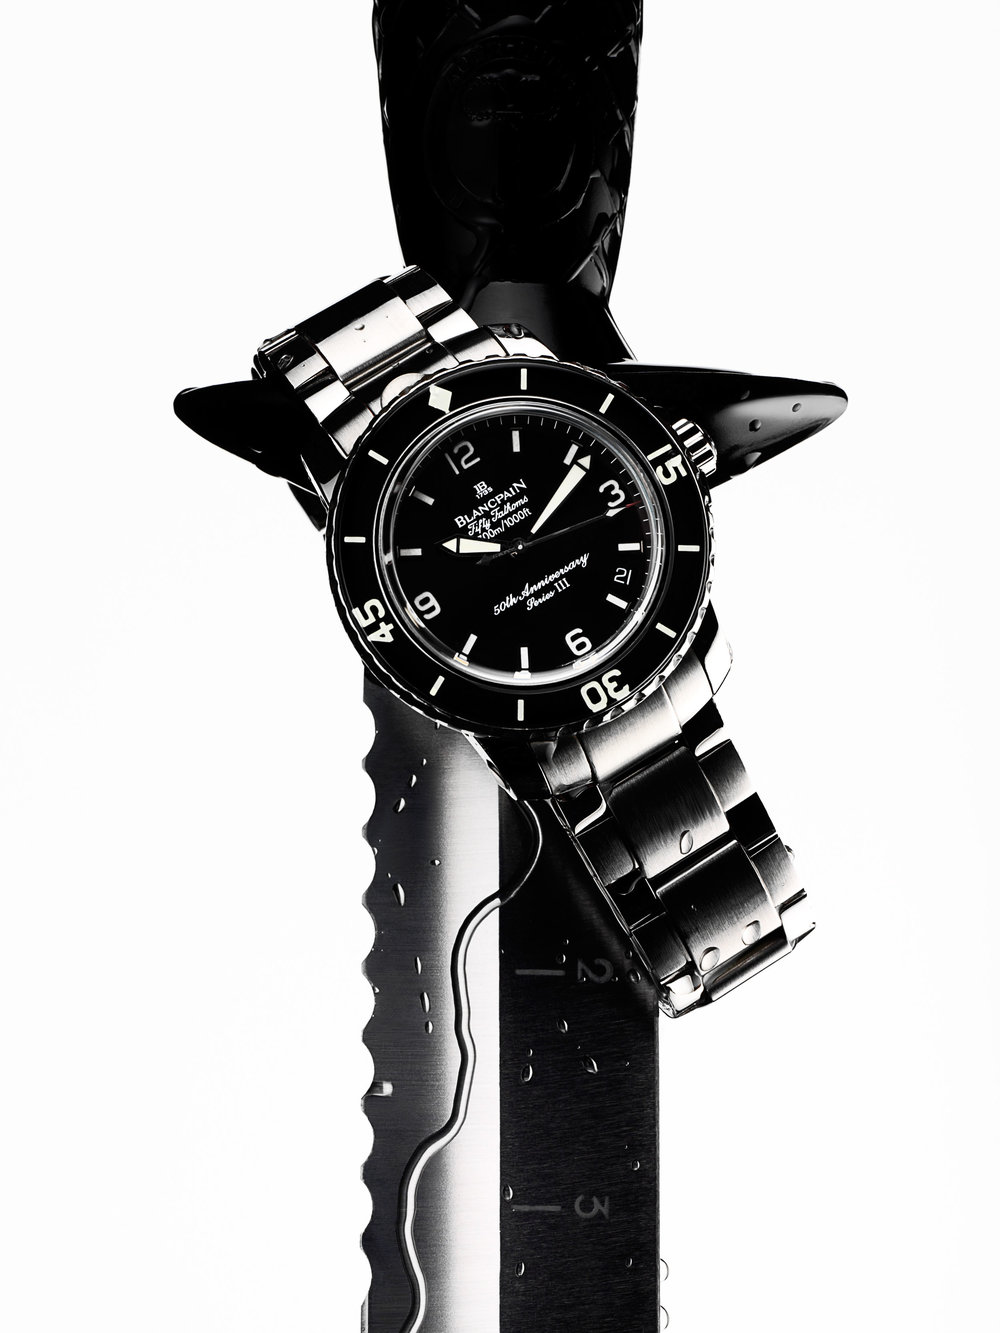 diving_watch_2_063_RS.jpg